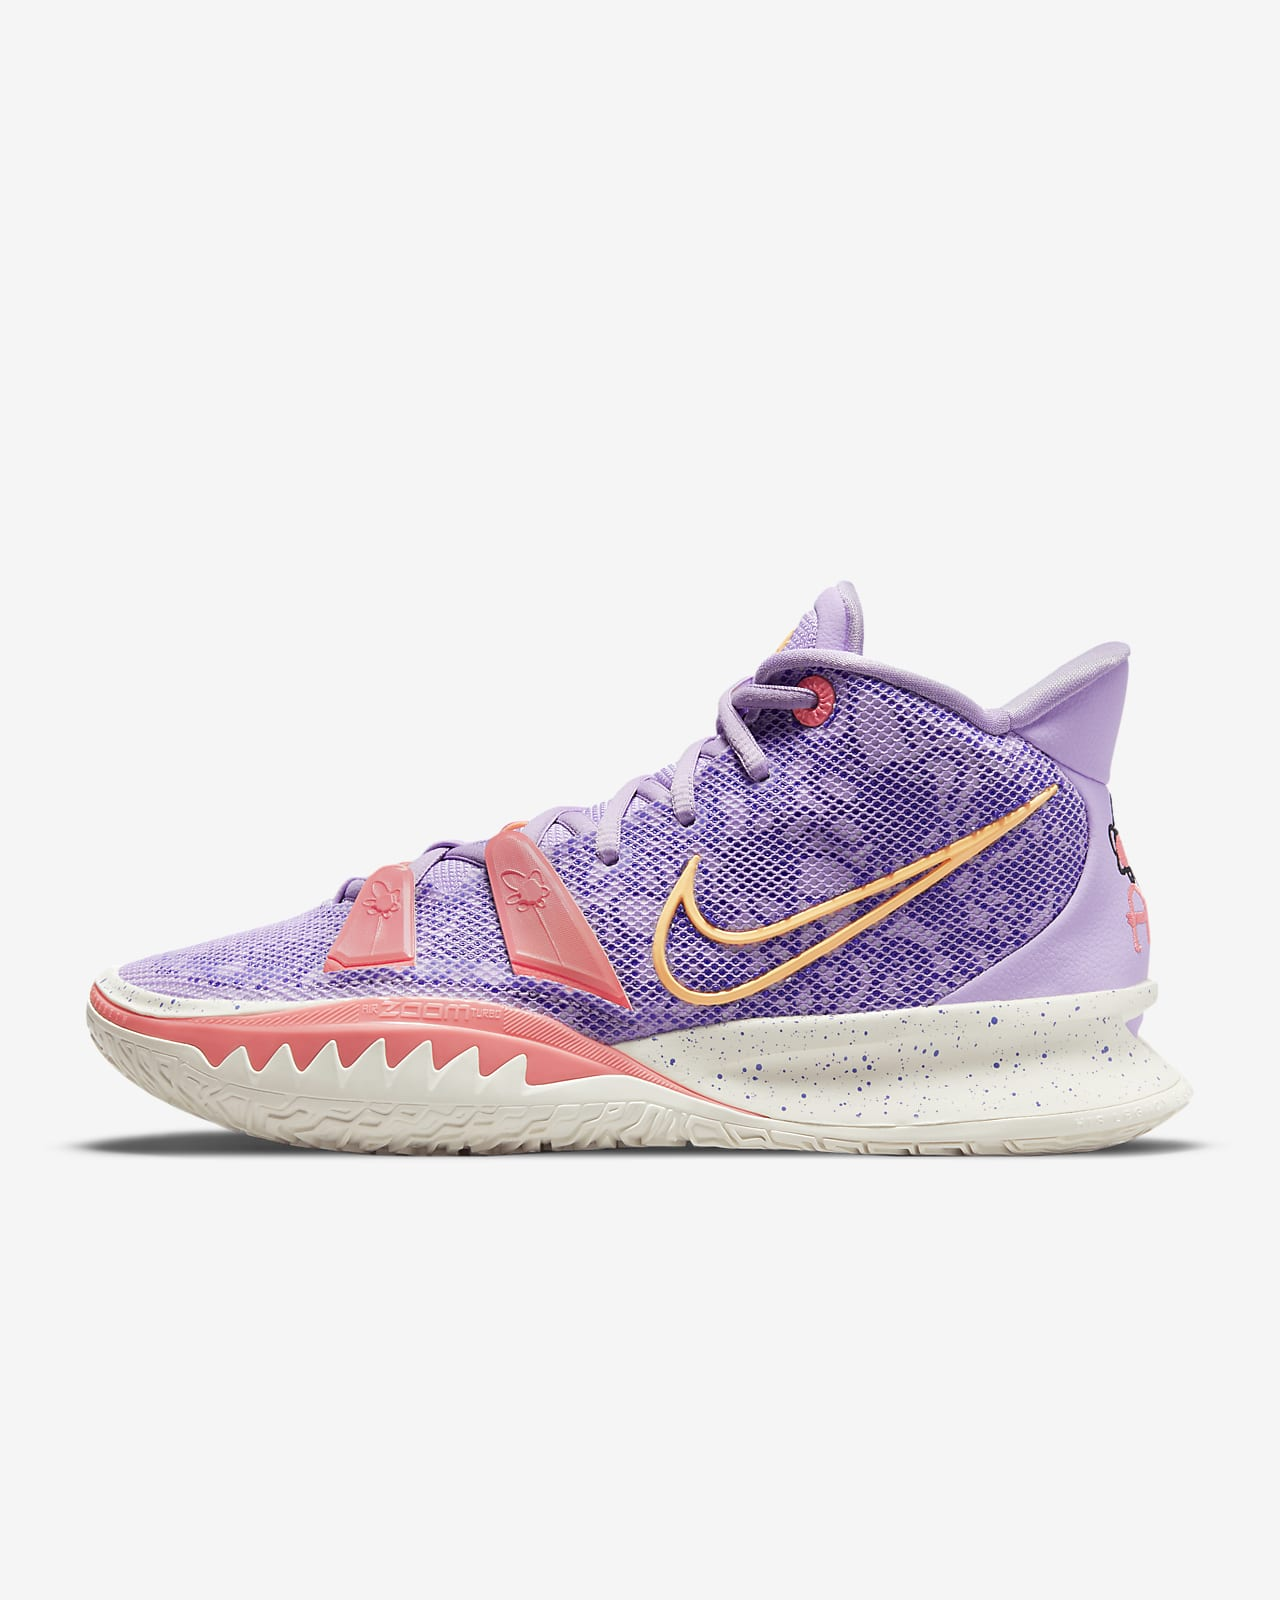 Kyrie 7 Basketball Shoes